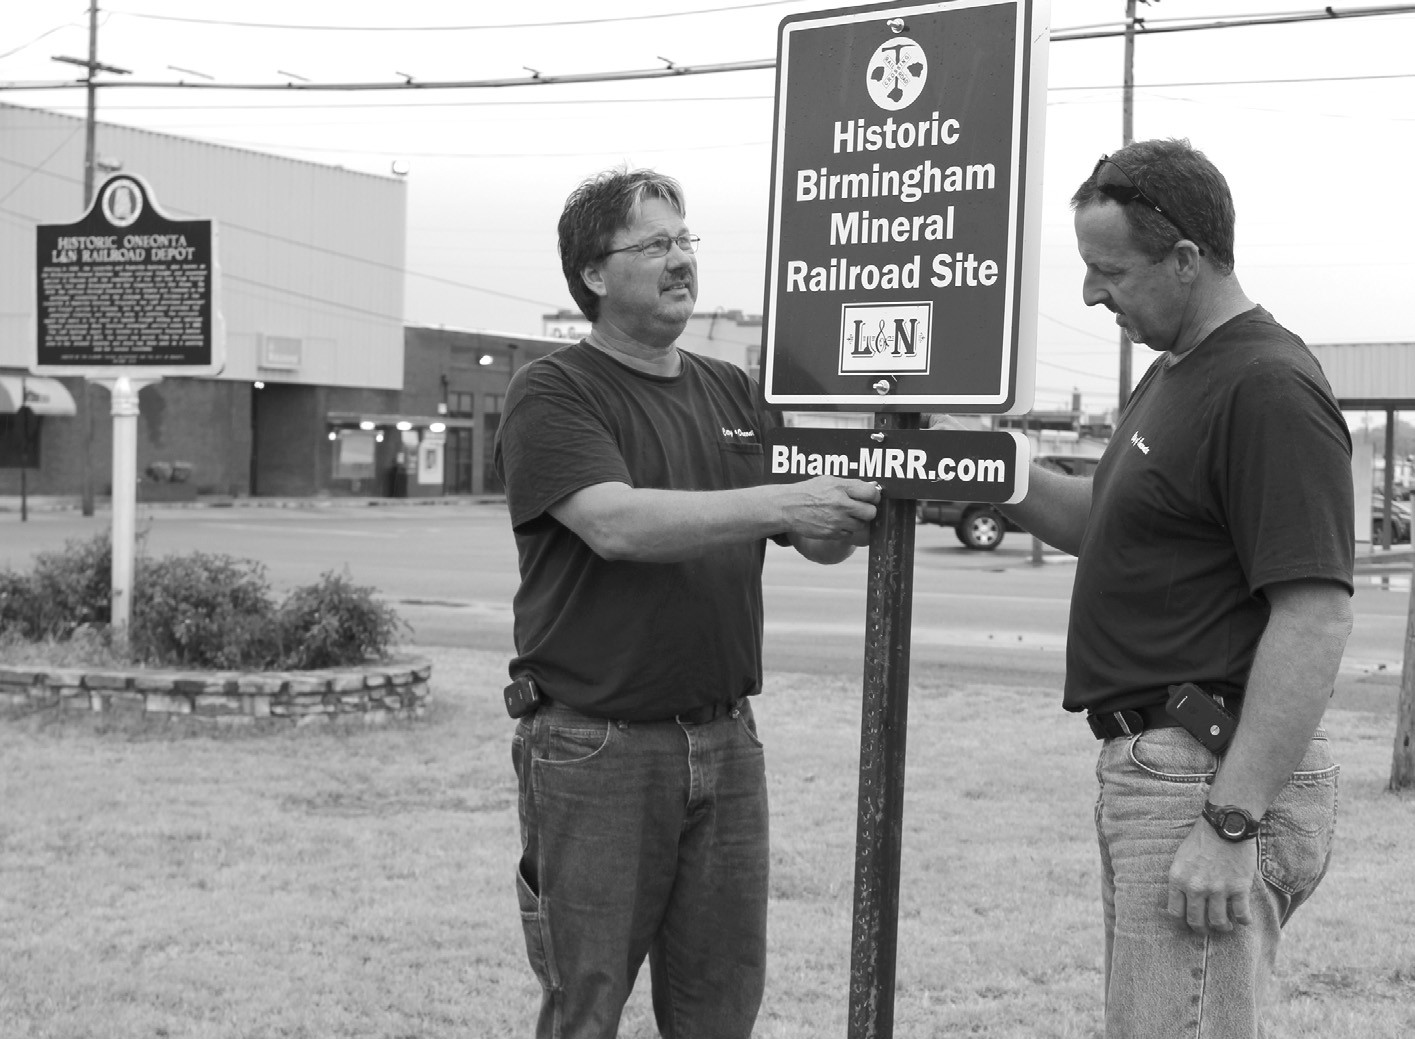 Last Friday, Oneonta park and recreation employees Norman Clements, left, and Chad Weems installed the Historic Birmingham Mineral Railroad Site sign in front of the Oneonta Public Library. As a part of Birmingham native James Lowery's project, signs are being placed at locations included in the 156-milelong Birmingham Mineral Railroad which ran from 1884-1988. For more information, visit www.bhammrr.com. The Blount County Memorial Museum assisted in the sign placement. – Nicole Singleton